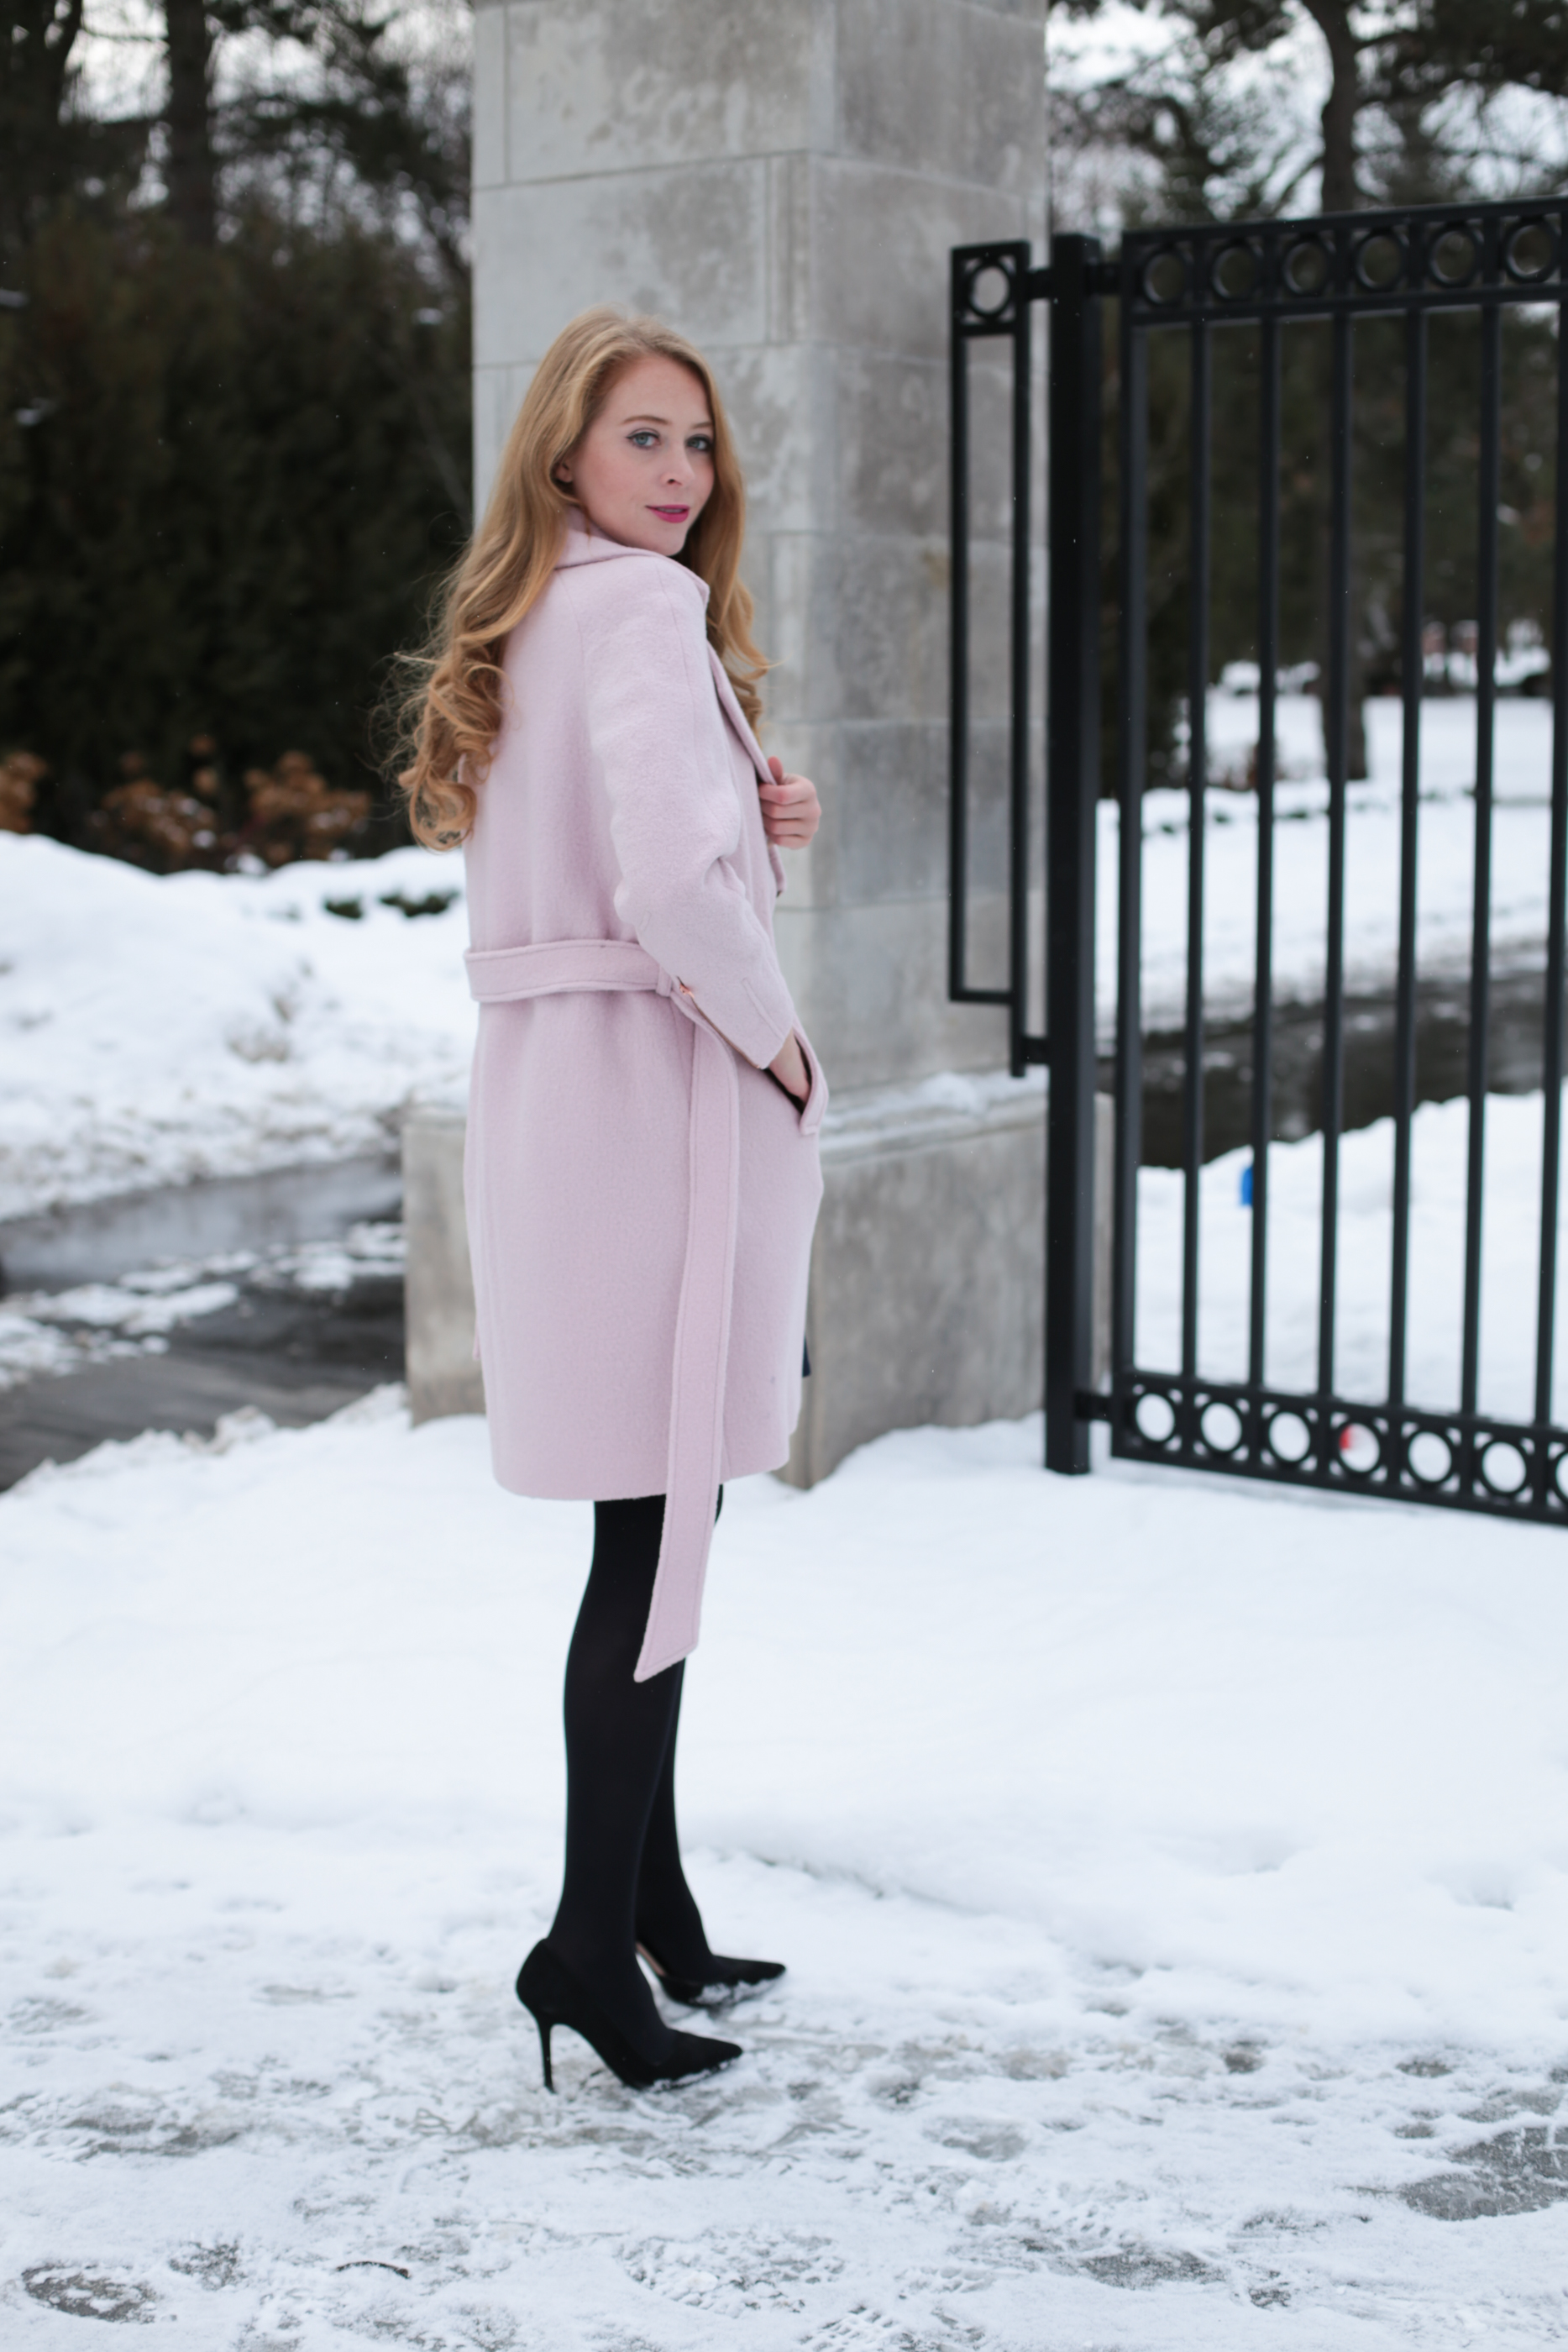 jackie-o-inspired-outfit-4-of-10